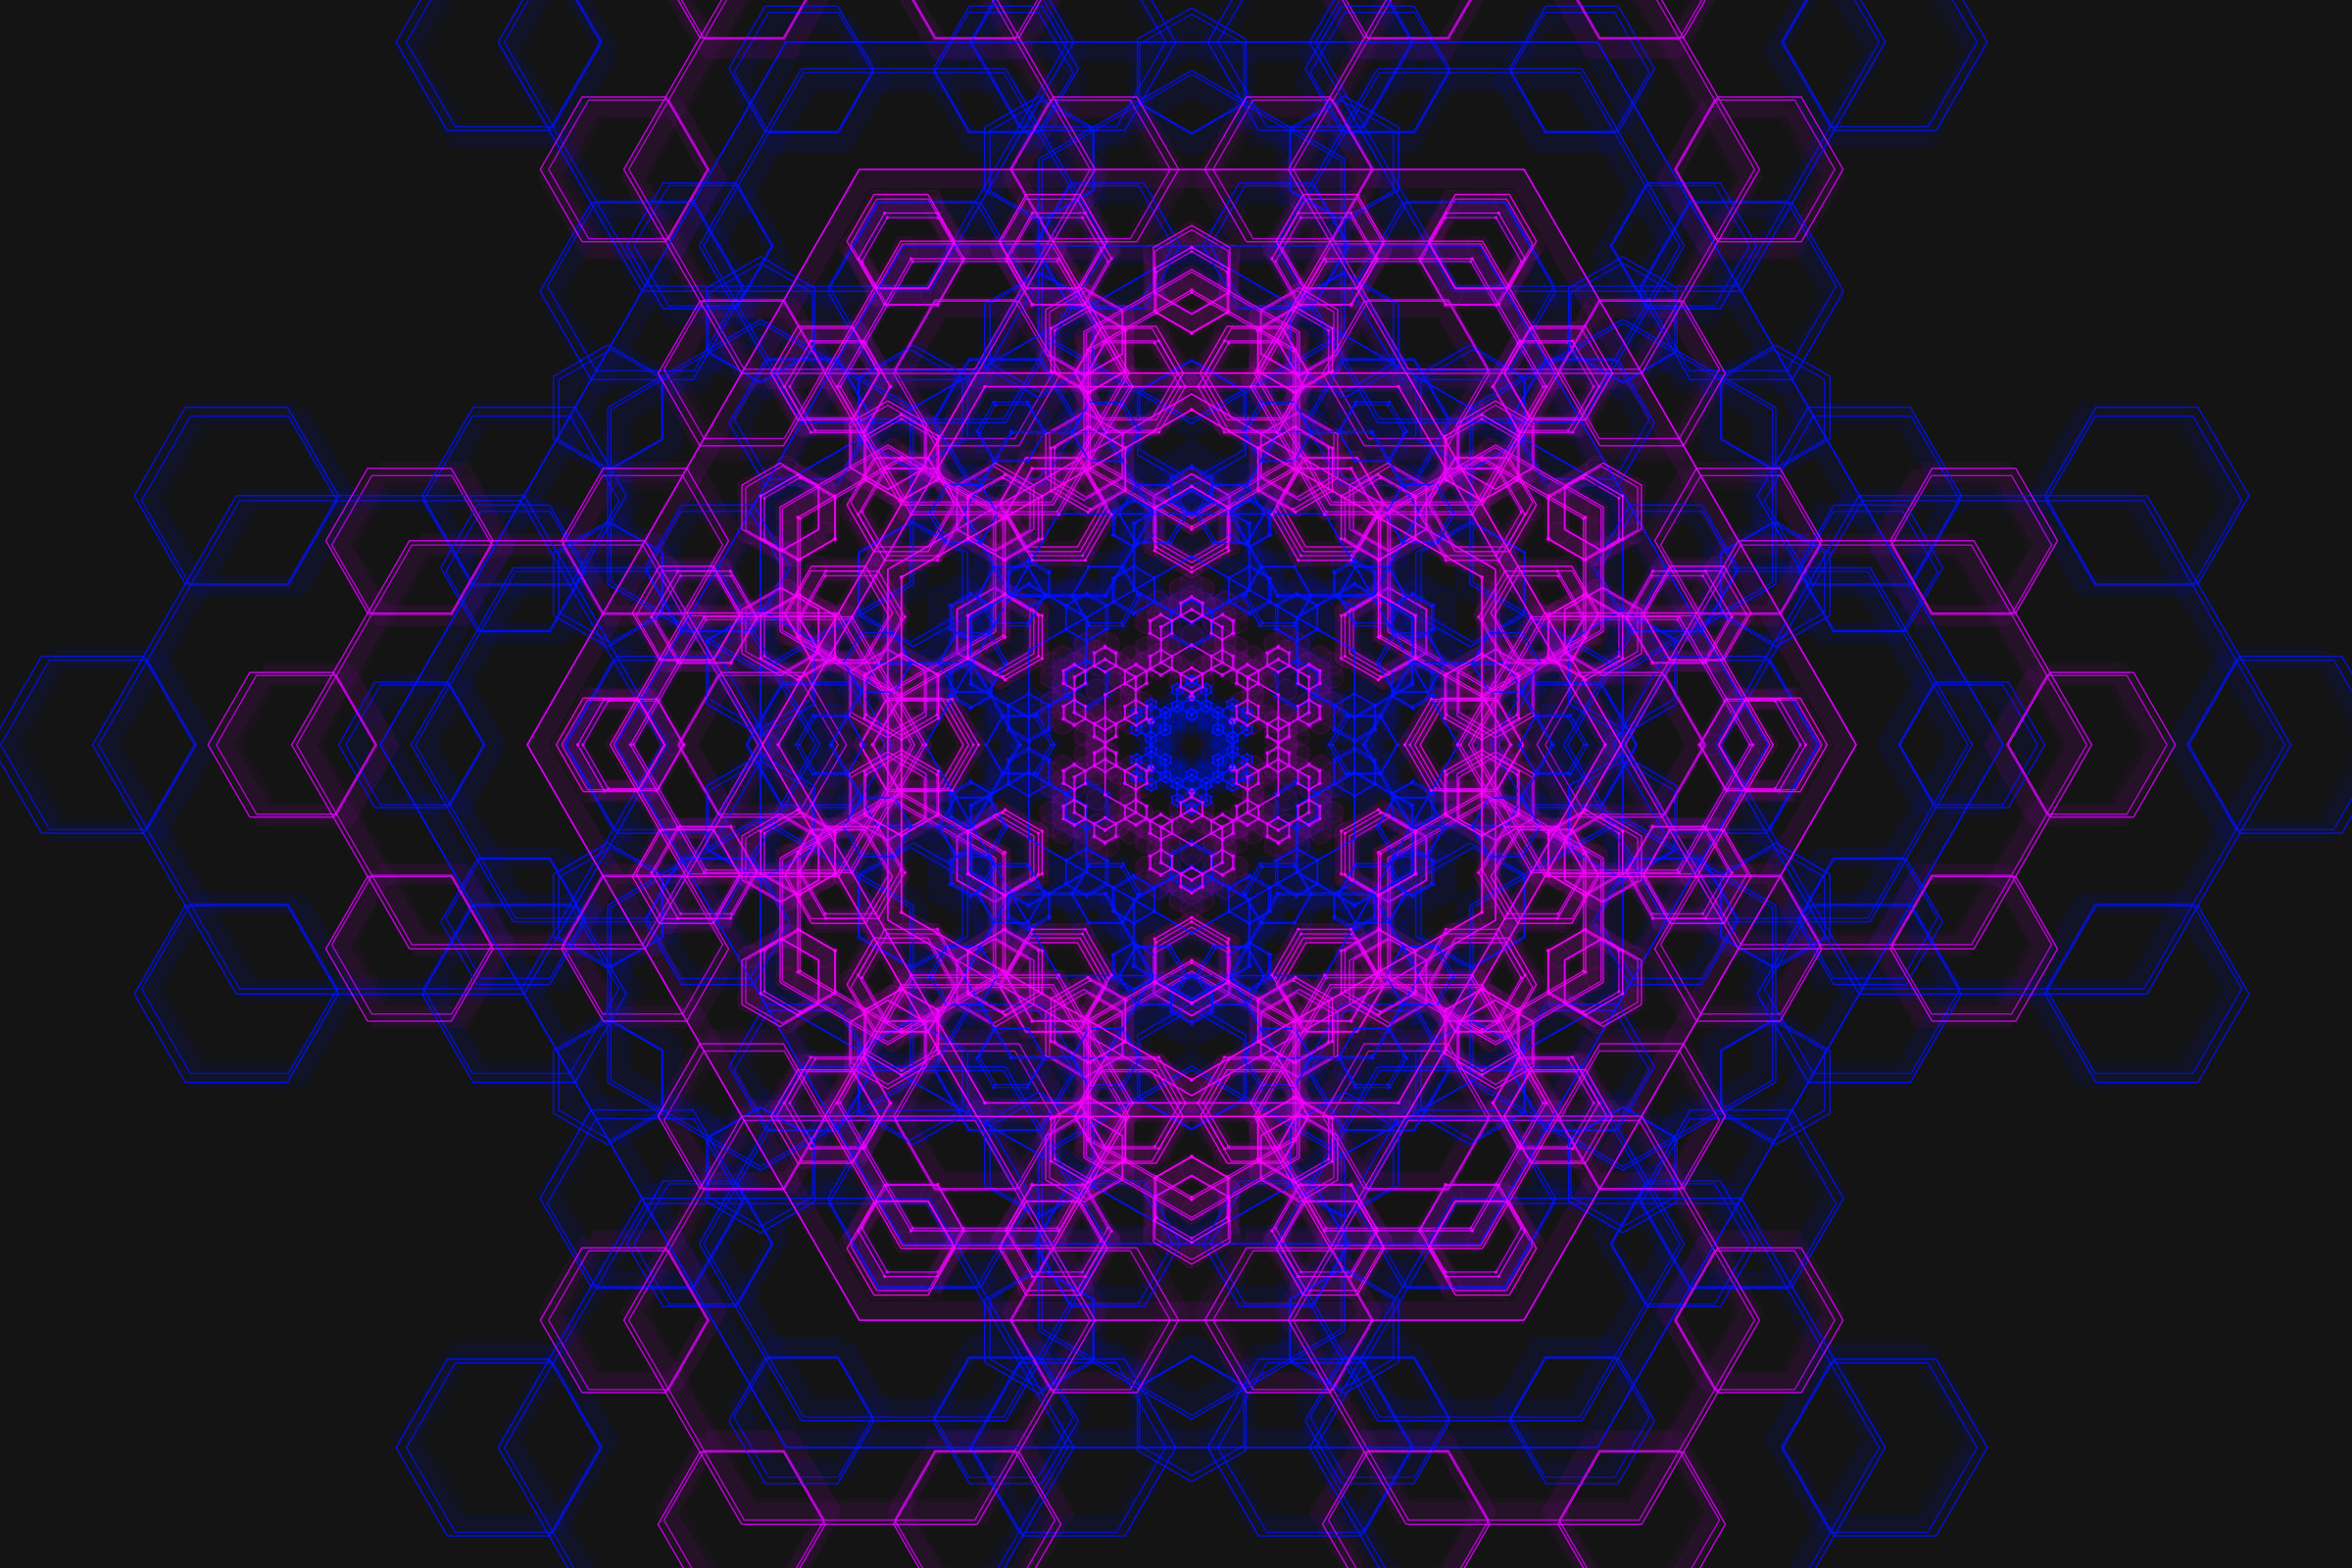 2400x1600 Get free high quality HD wallpapers iphone 5 wallpaper sacred geometry